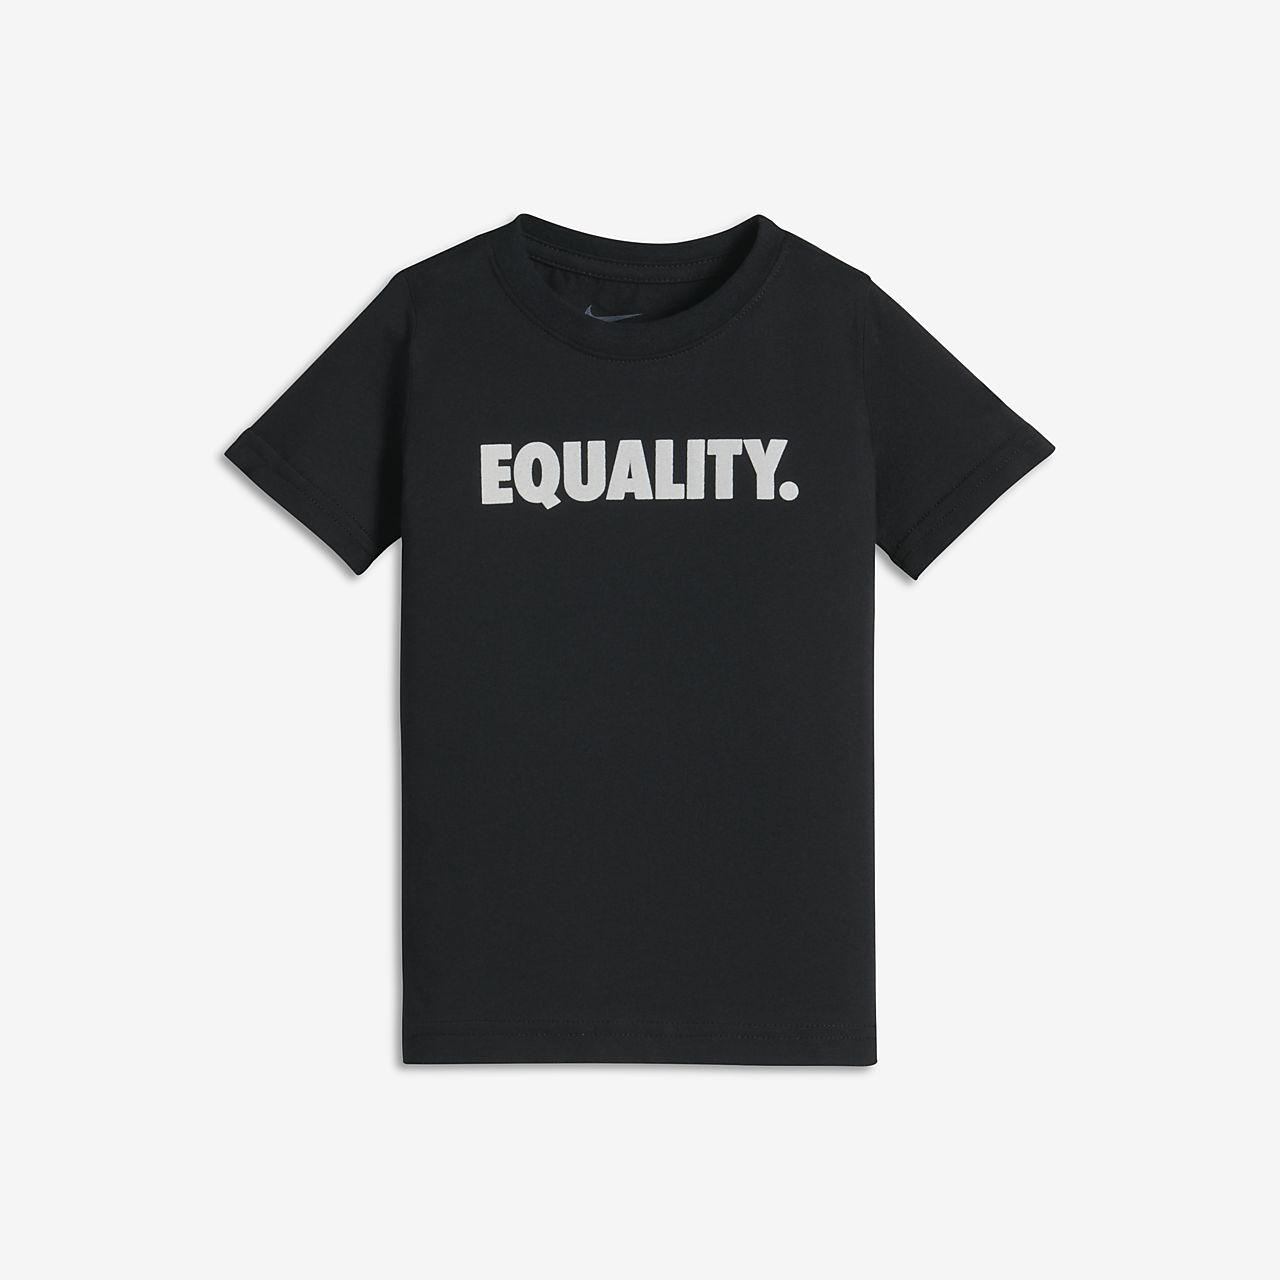 3adf68be Nike EQUALITY Infant/Toddler T-Shirt. Nike.com